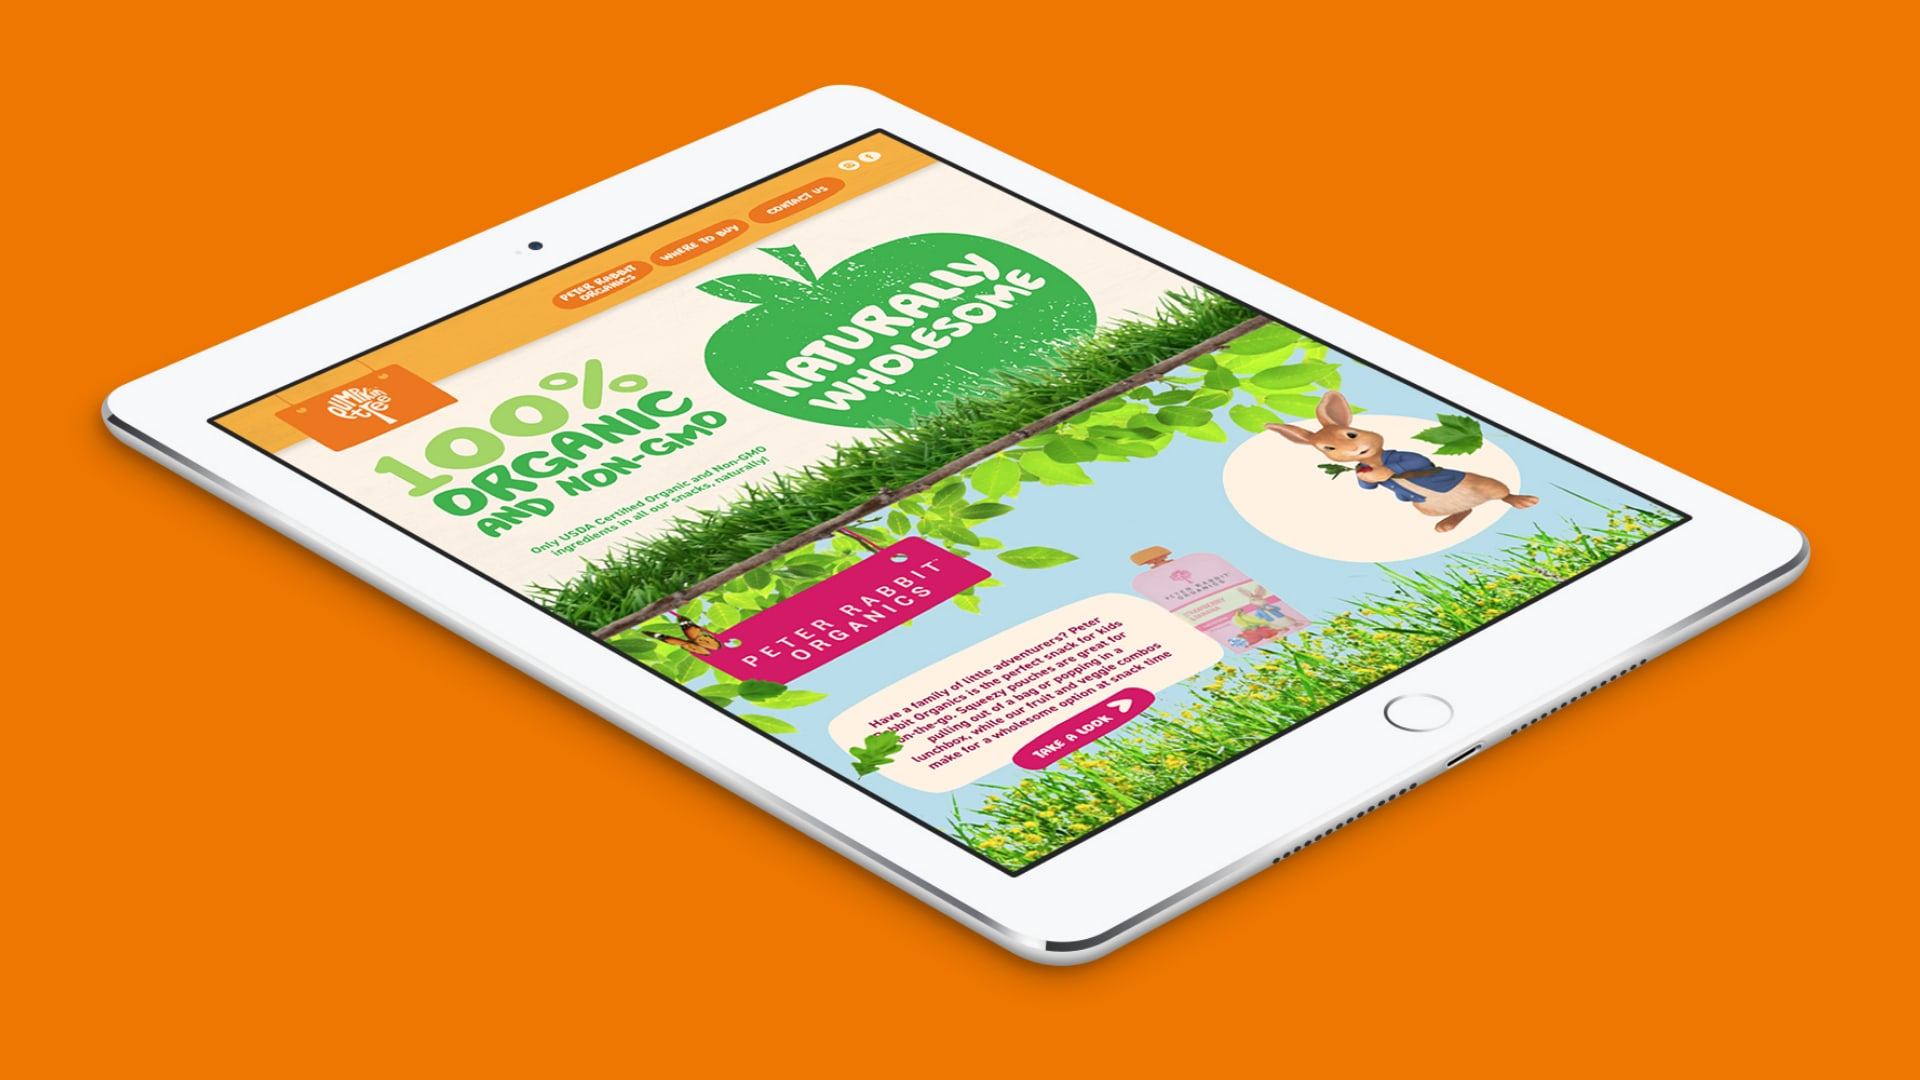 Homepage visual from Pumpkin Tree Snacks website on a white iPad